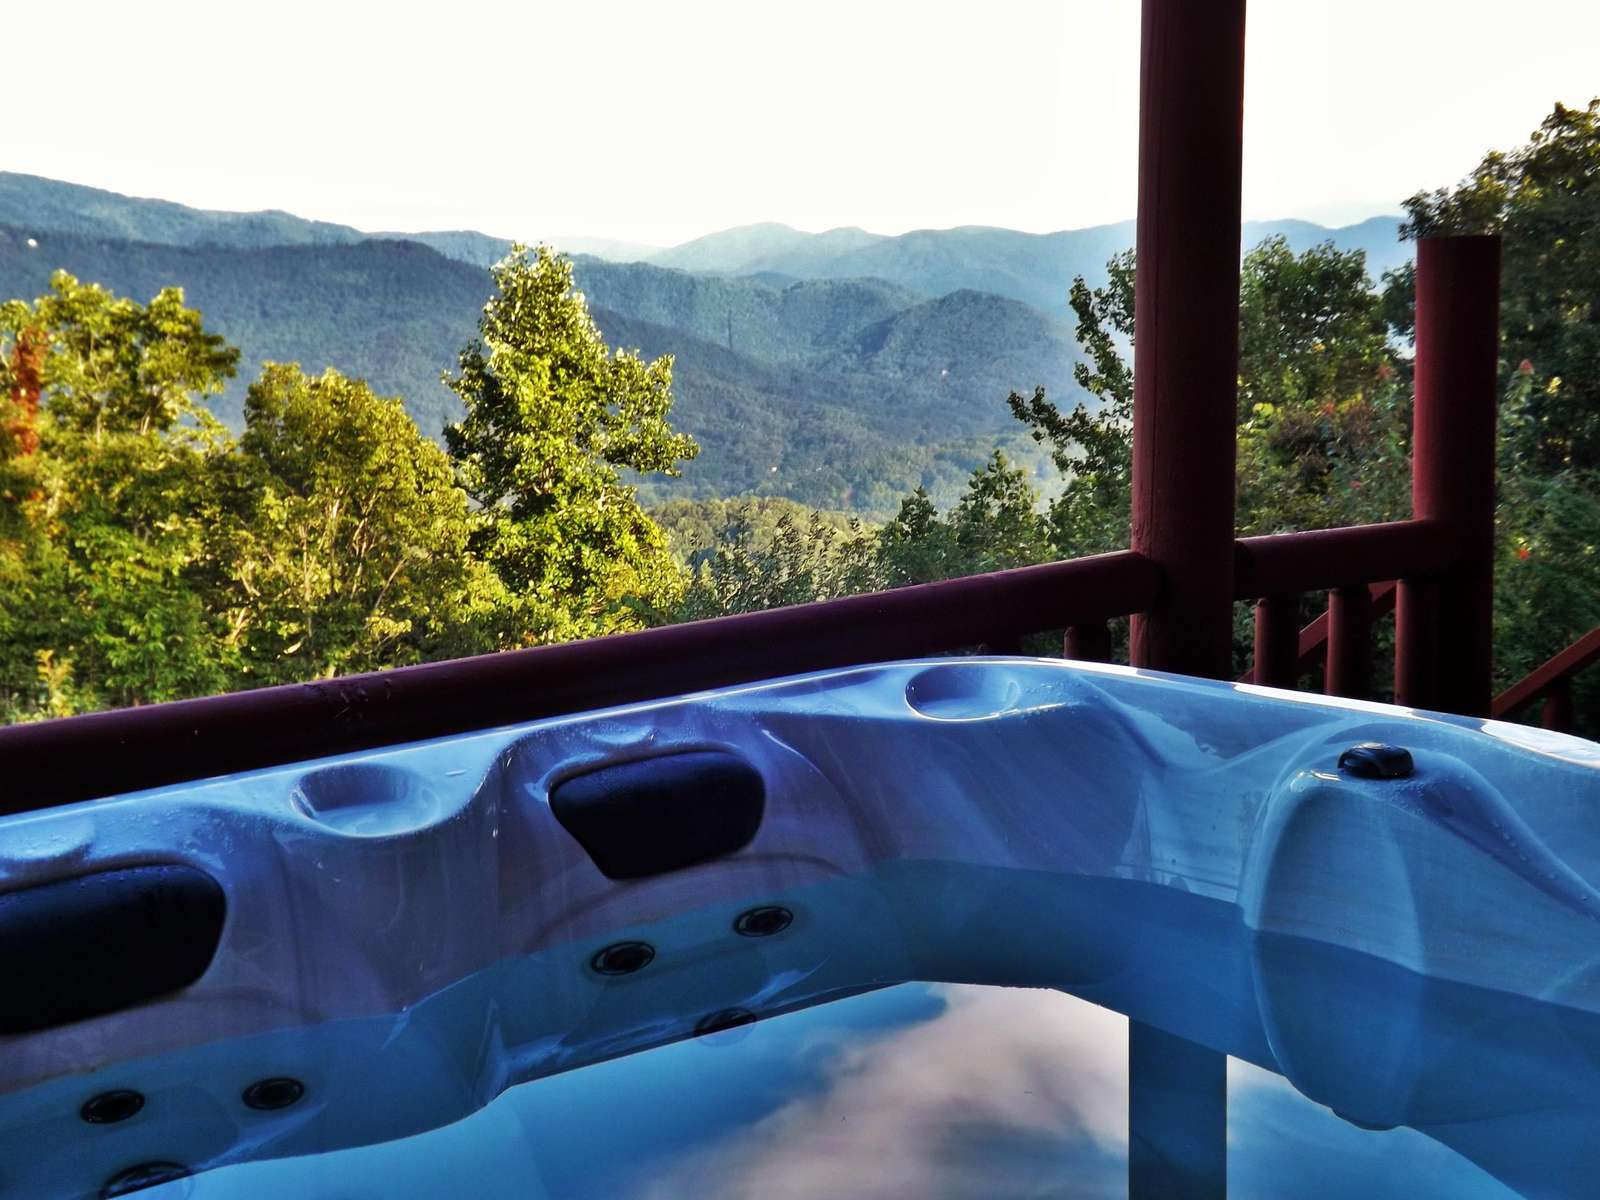 Therapeudic Hot Tub with Smoky Mountain Views